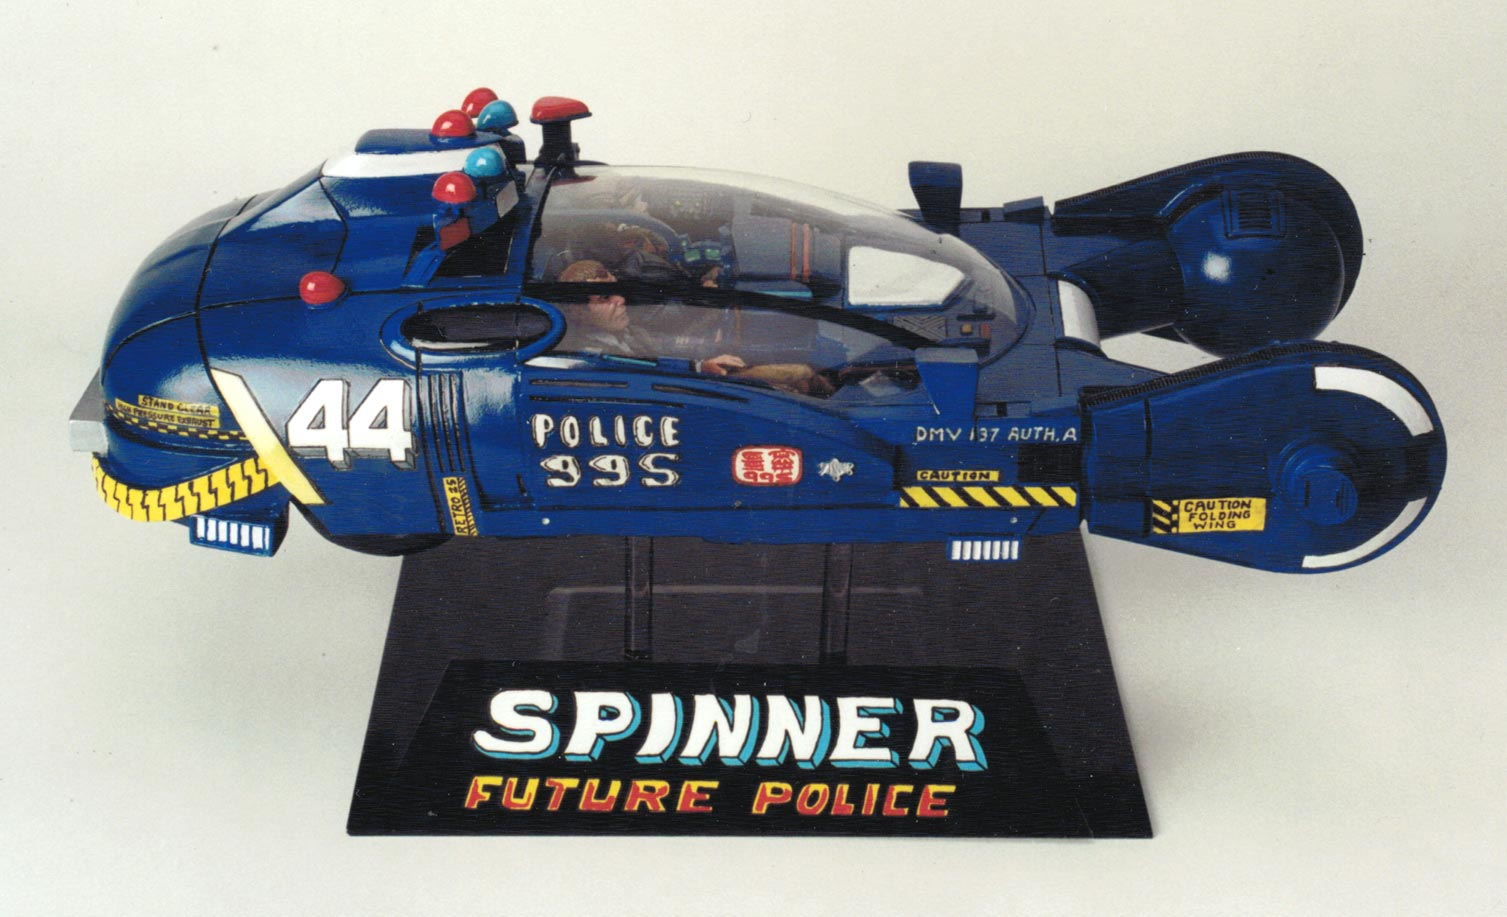 Police Spinner 2019 w/ Deckard & Gaff figures 1/12 Scale Prop Model Kit: